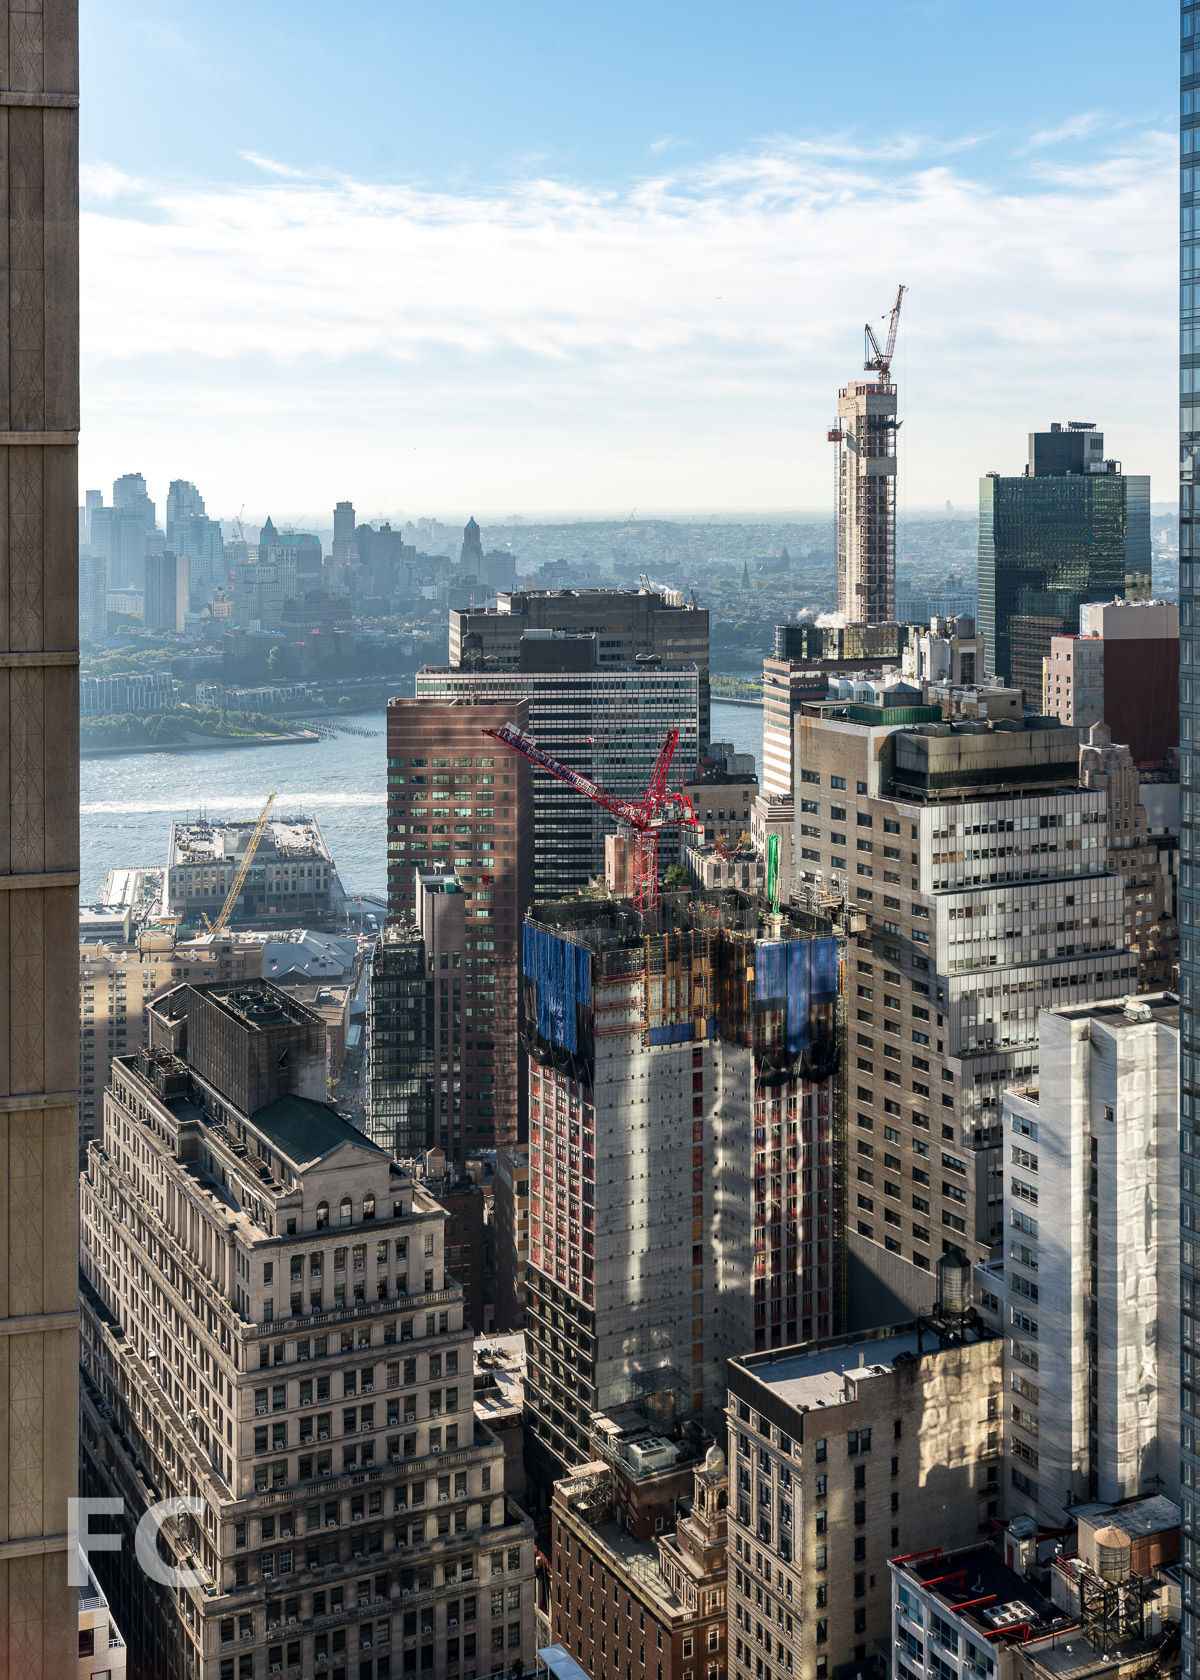 Looking east from the 41st floor towards Lower Manhattan and the Brooklyn waterfront.